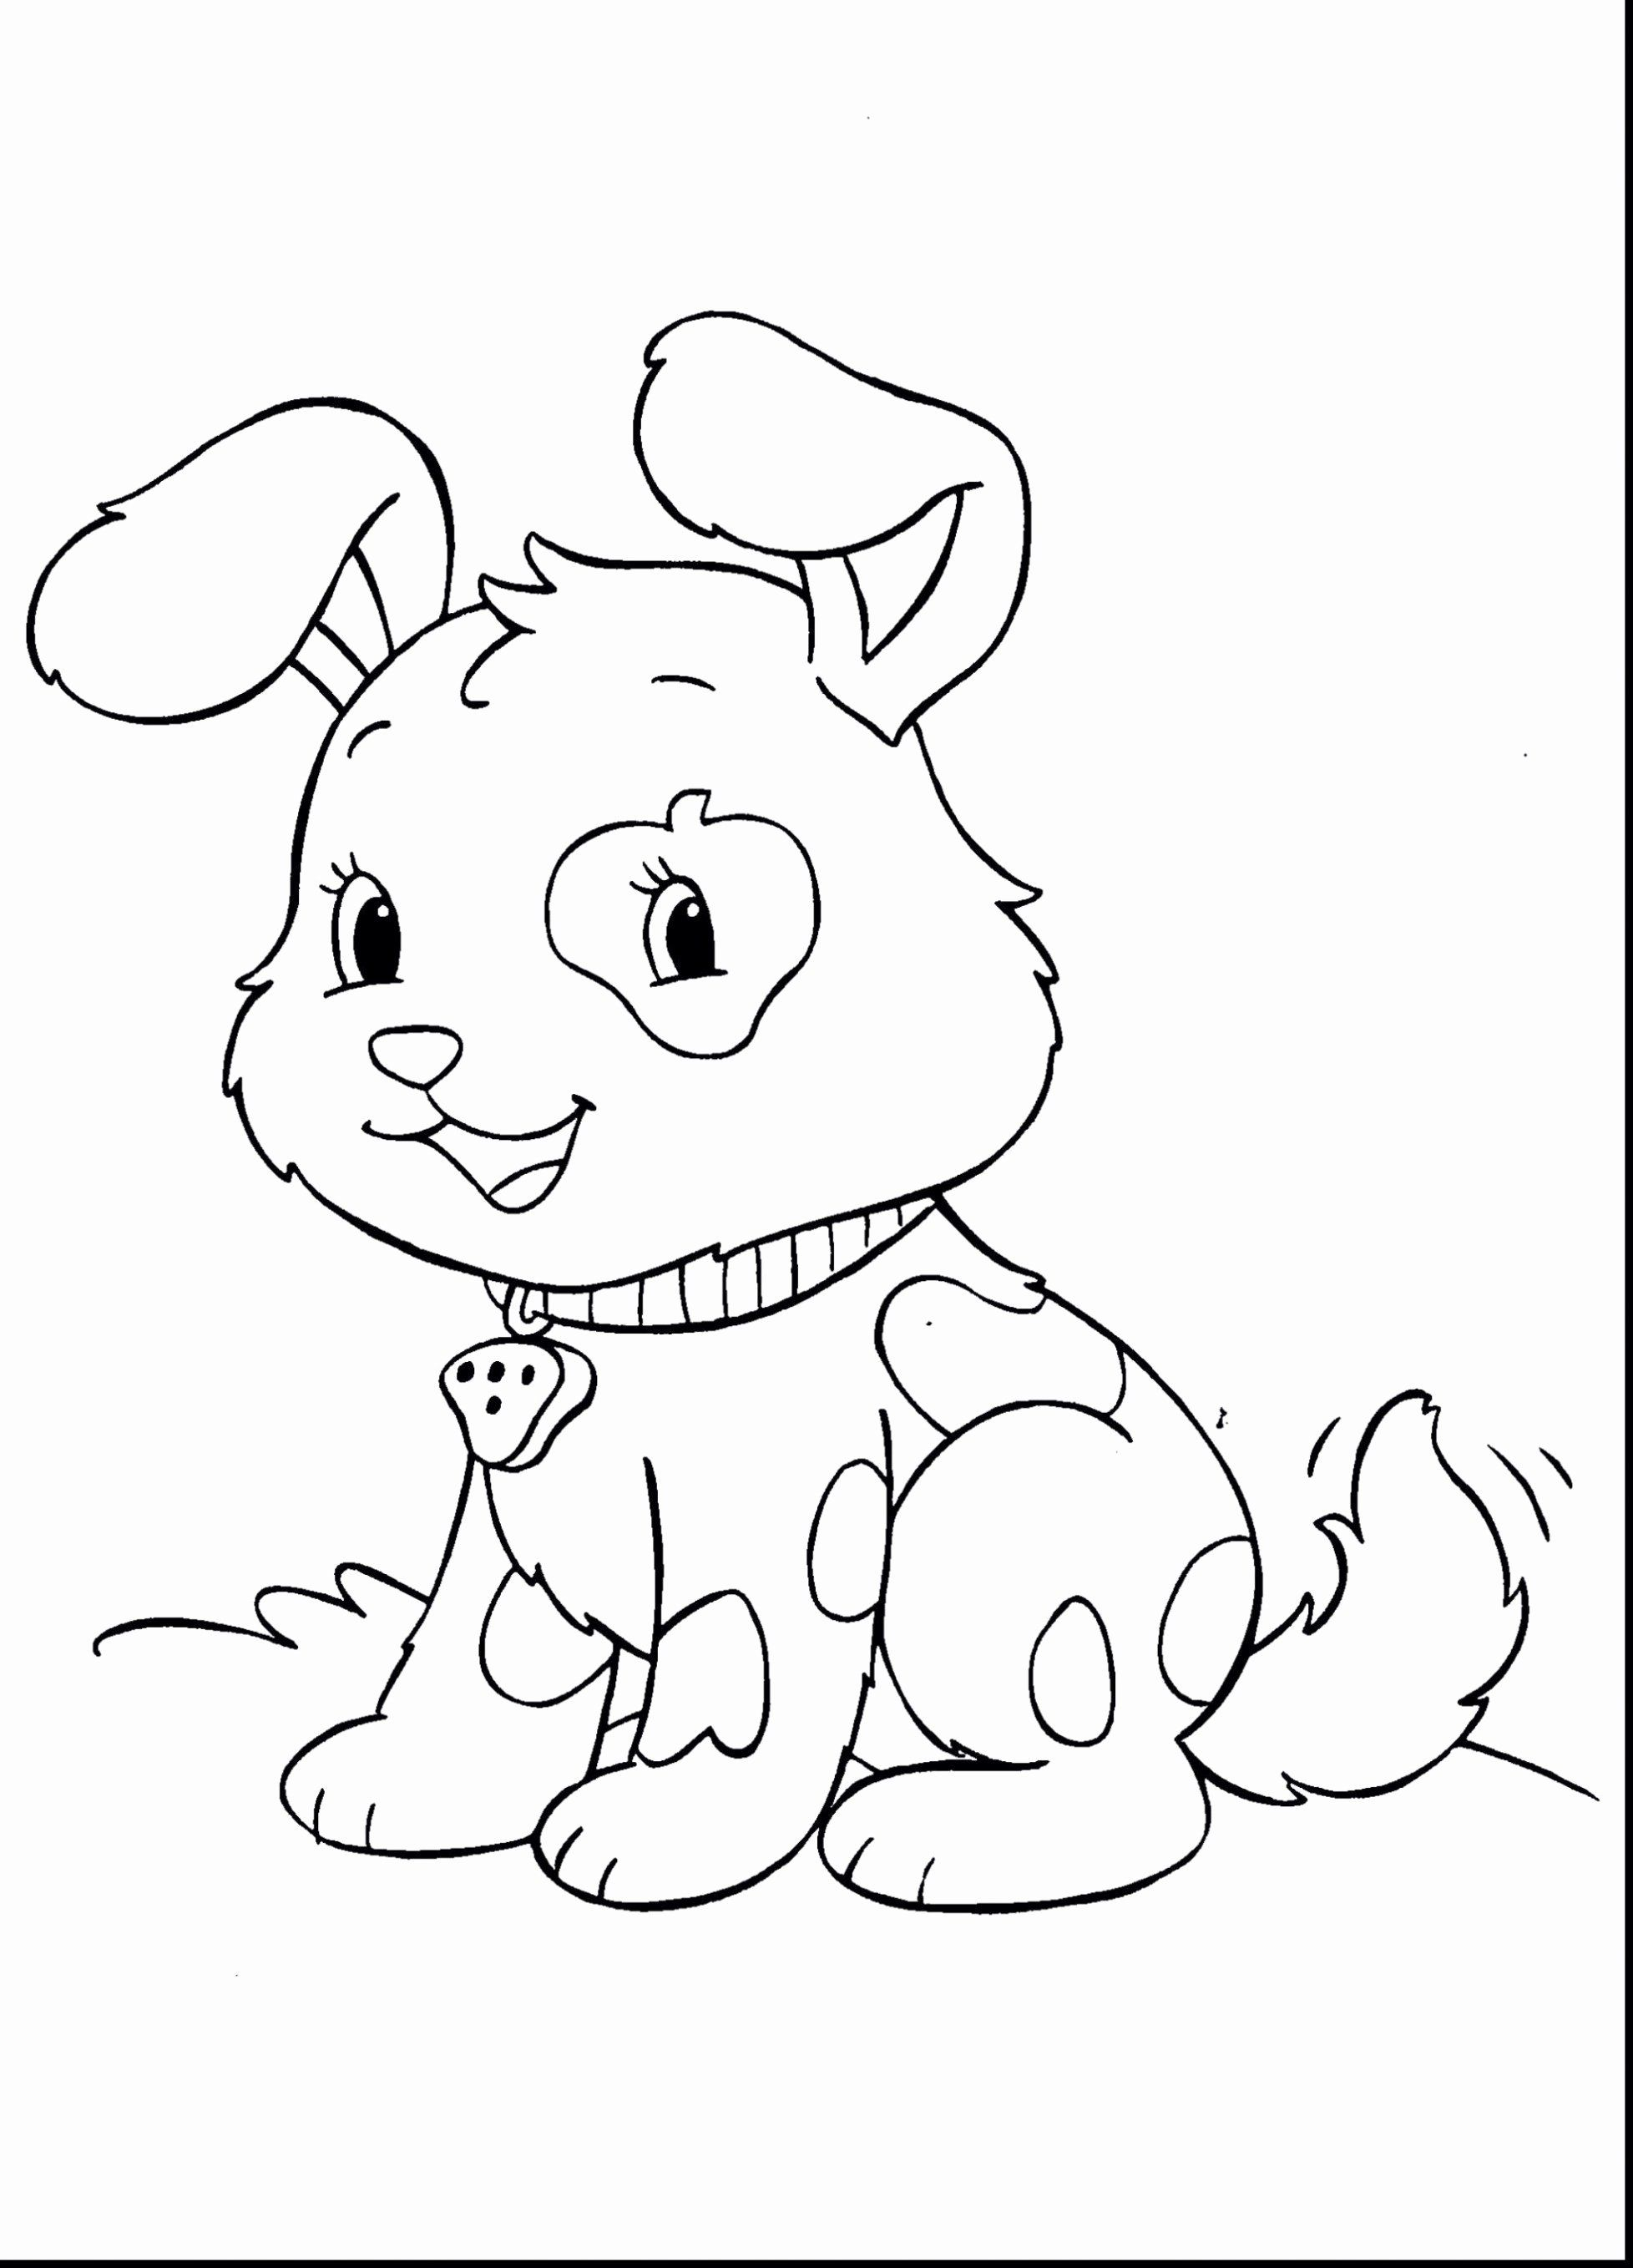 Animal Coloring Videos Luxury Cute Dog Coloring Page Fresh Cartoon Coloring Pages Col Puppy Coloring Pages Farm Animal Coloring Pages Zoo Animal Coloring Pages